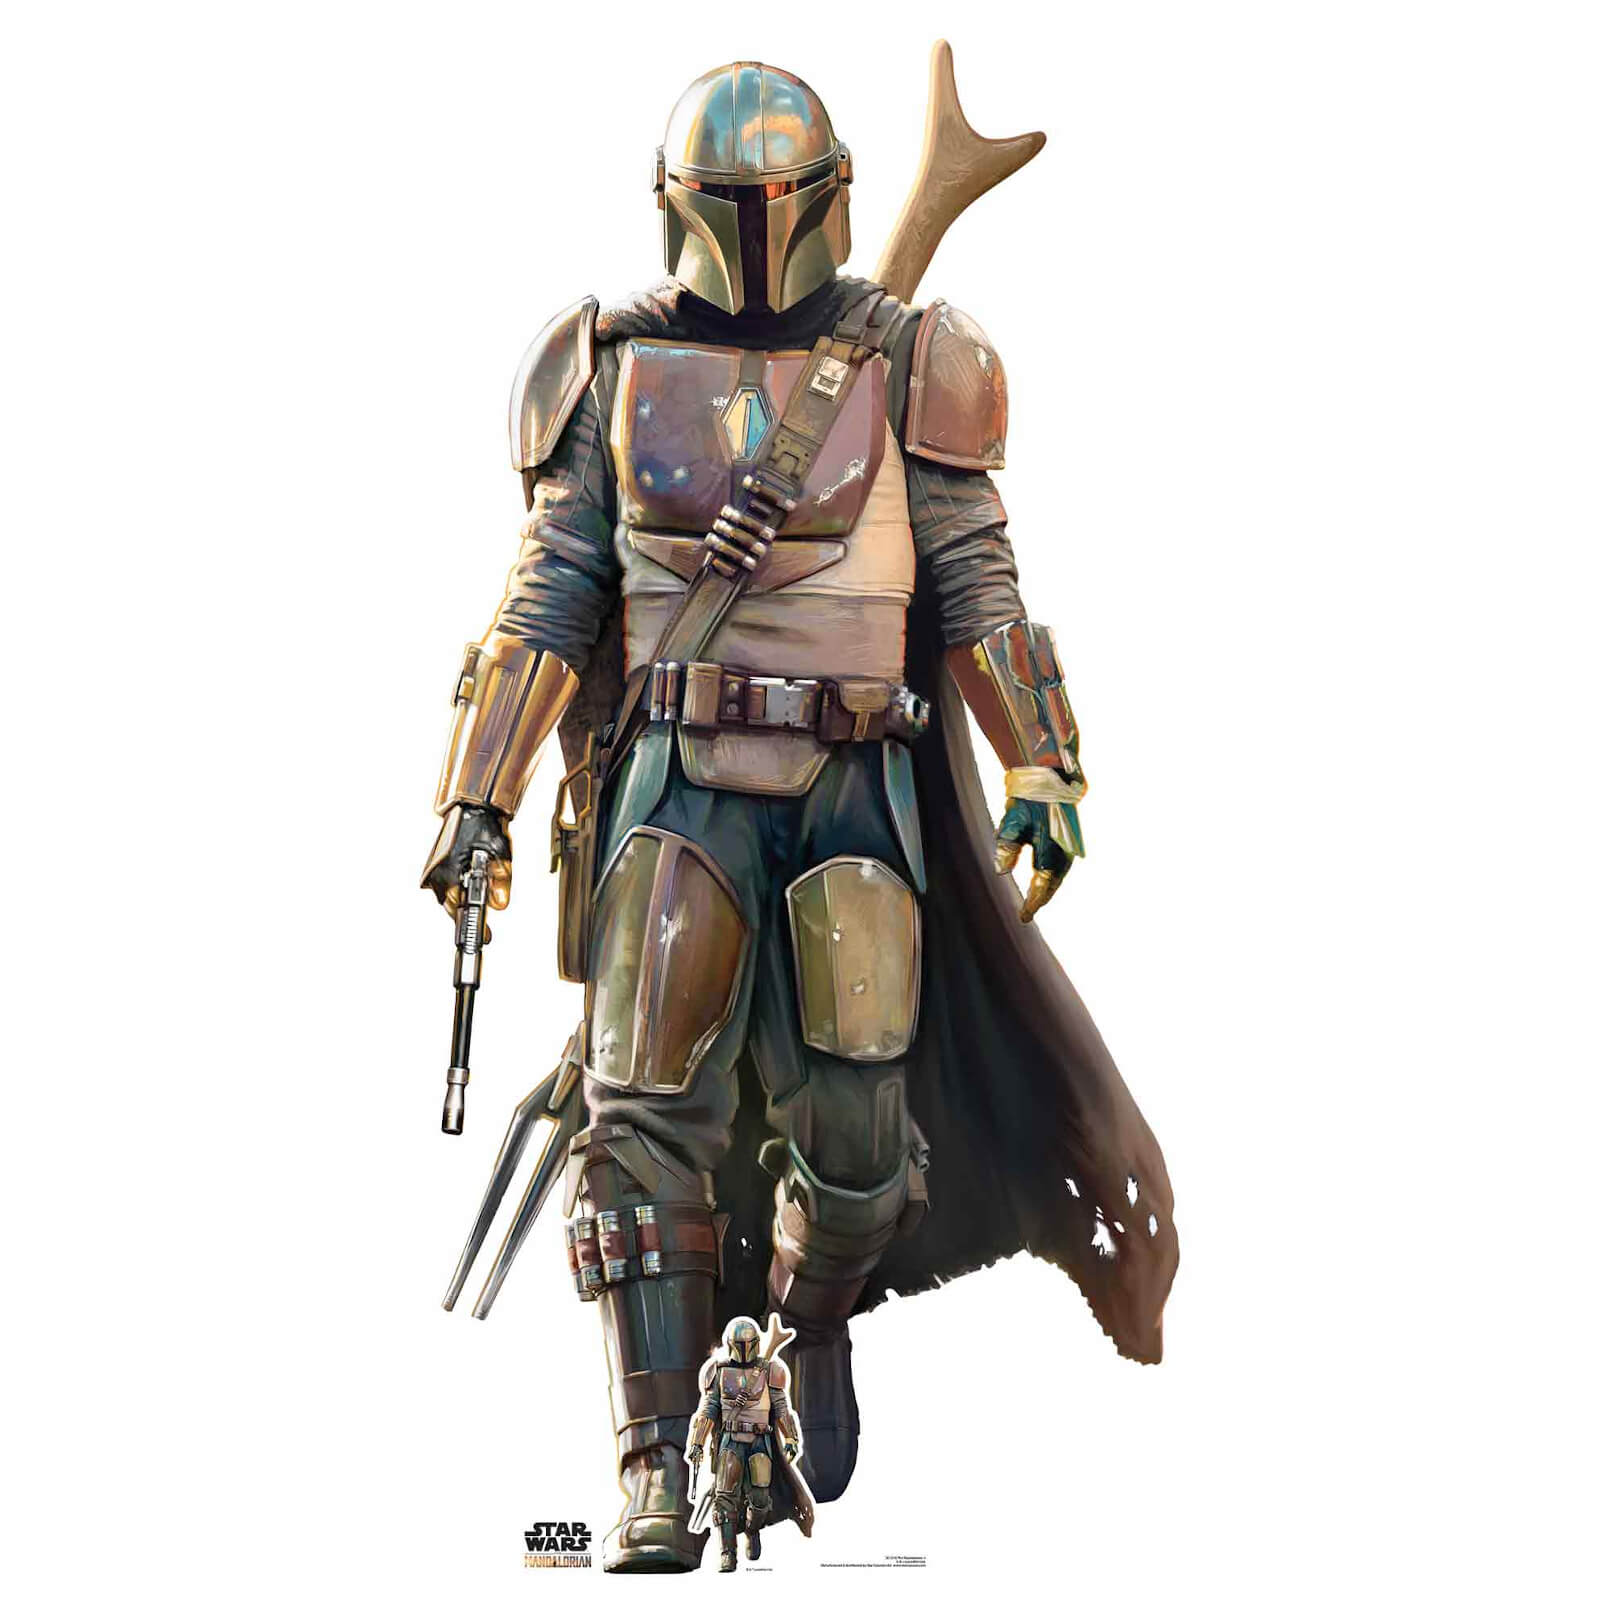 Image of The Mandalorian - Lone Gunfighter Oversized Cardboard Cut Out